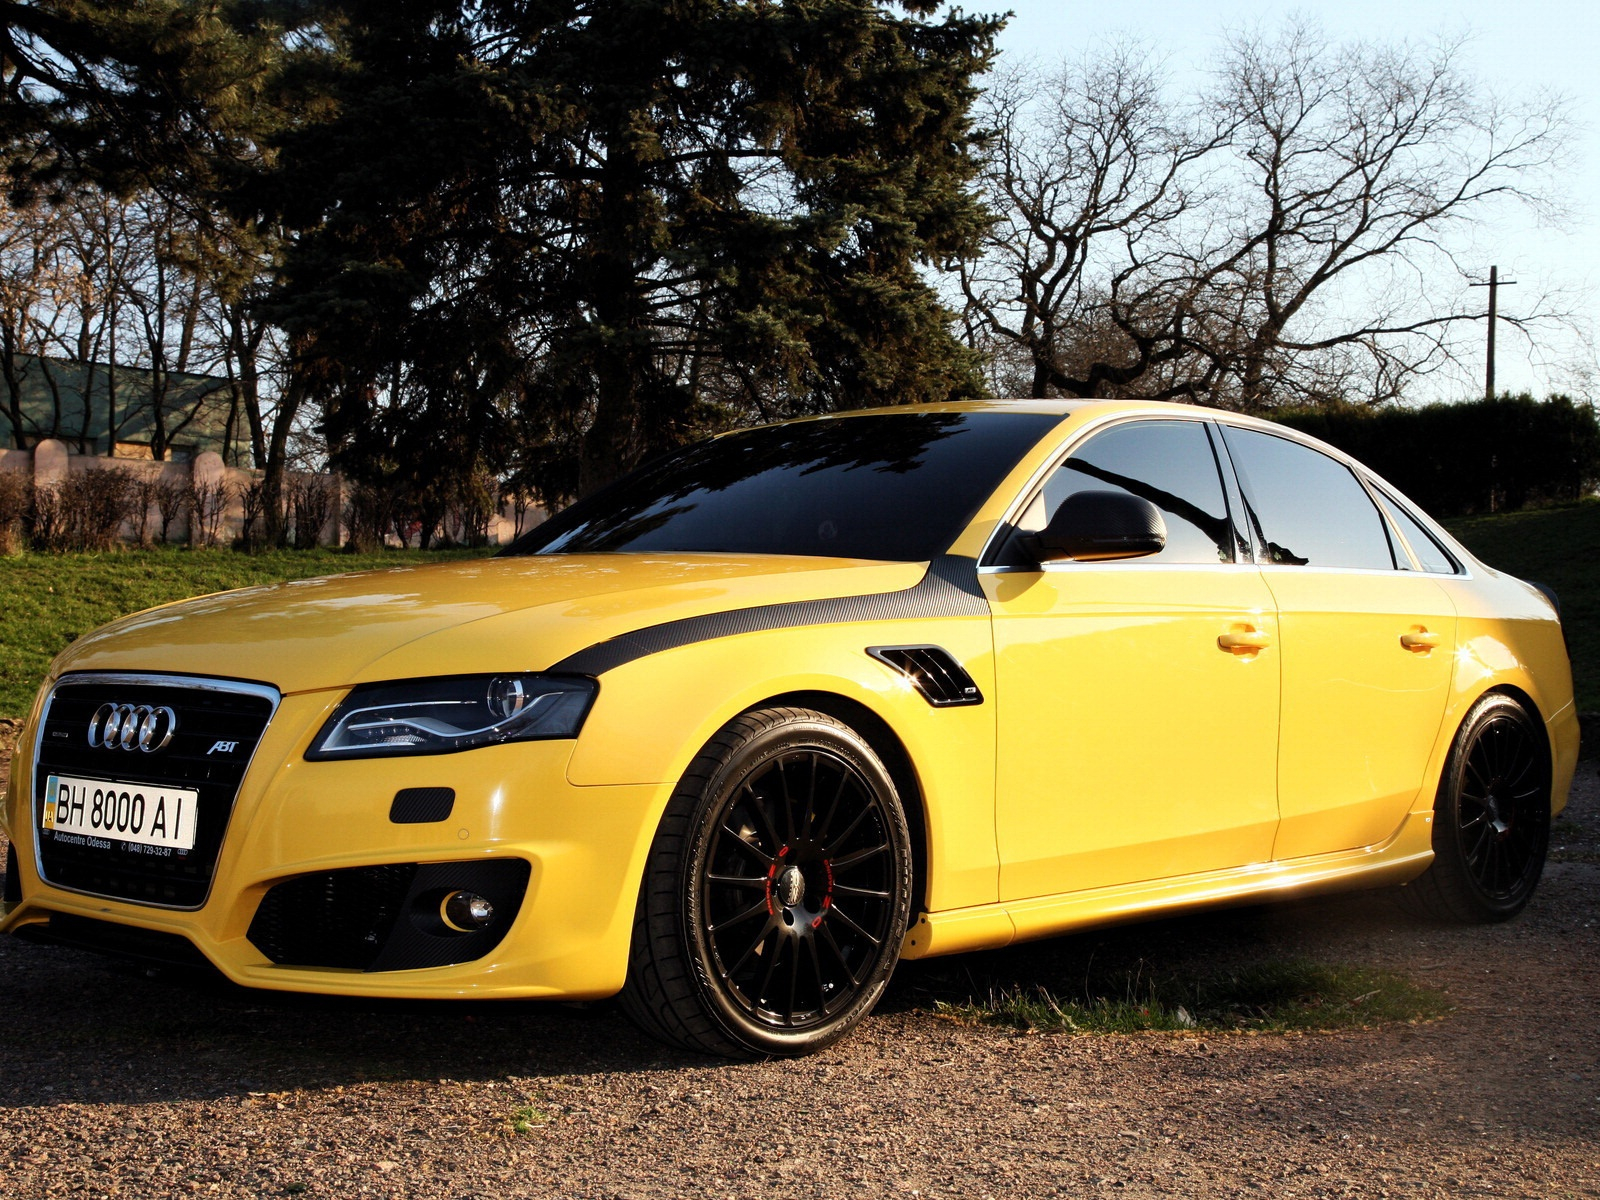 Audi A4 yellow color car wallpapers